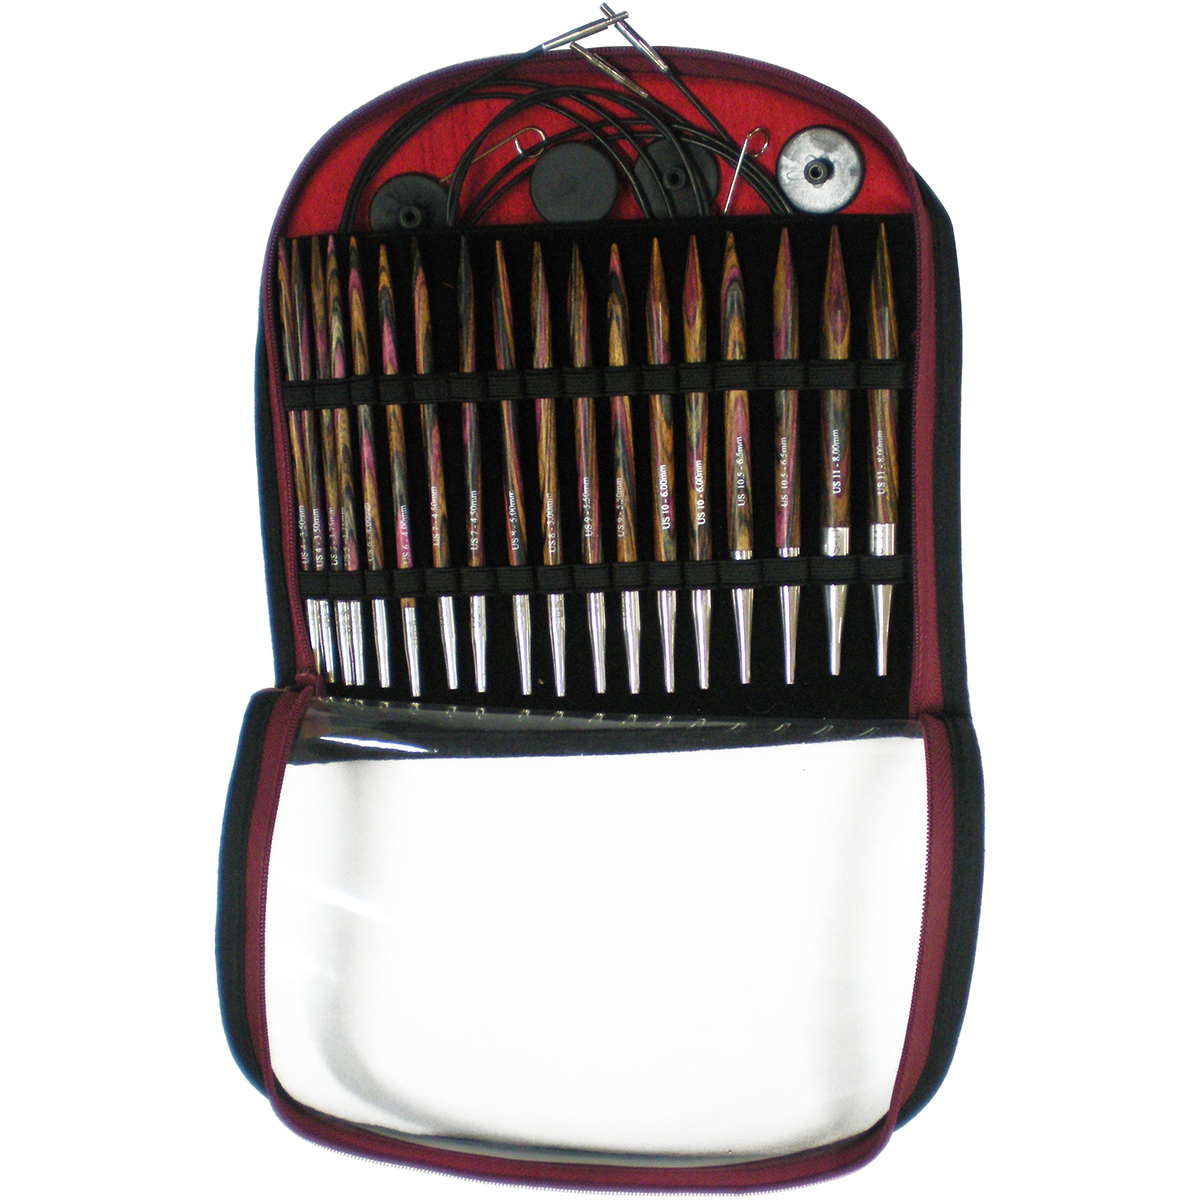 Premier Yarn Needle Amp Notions Organizer Red